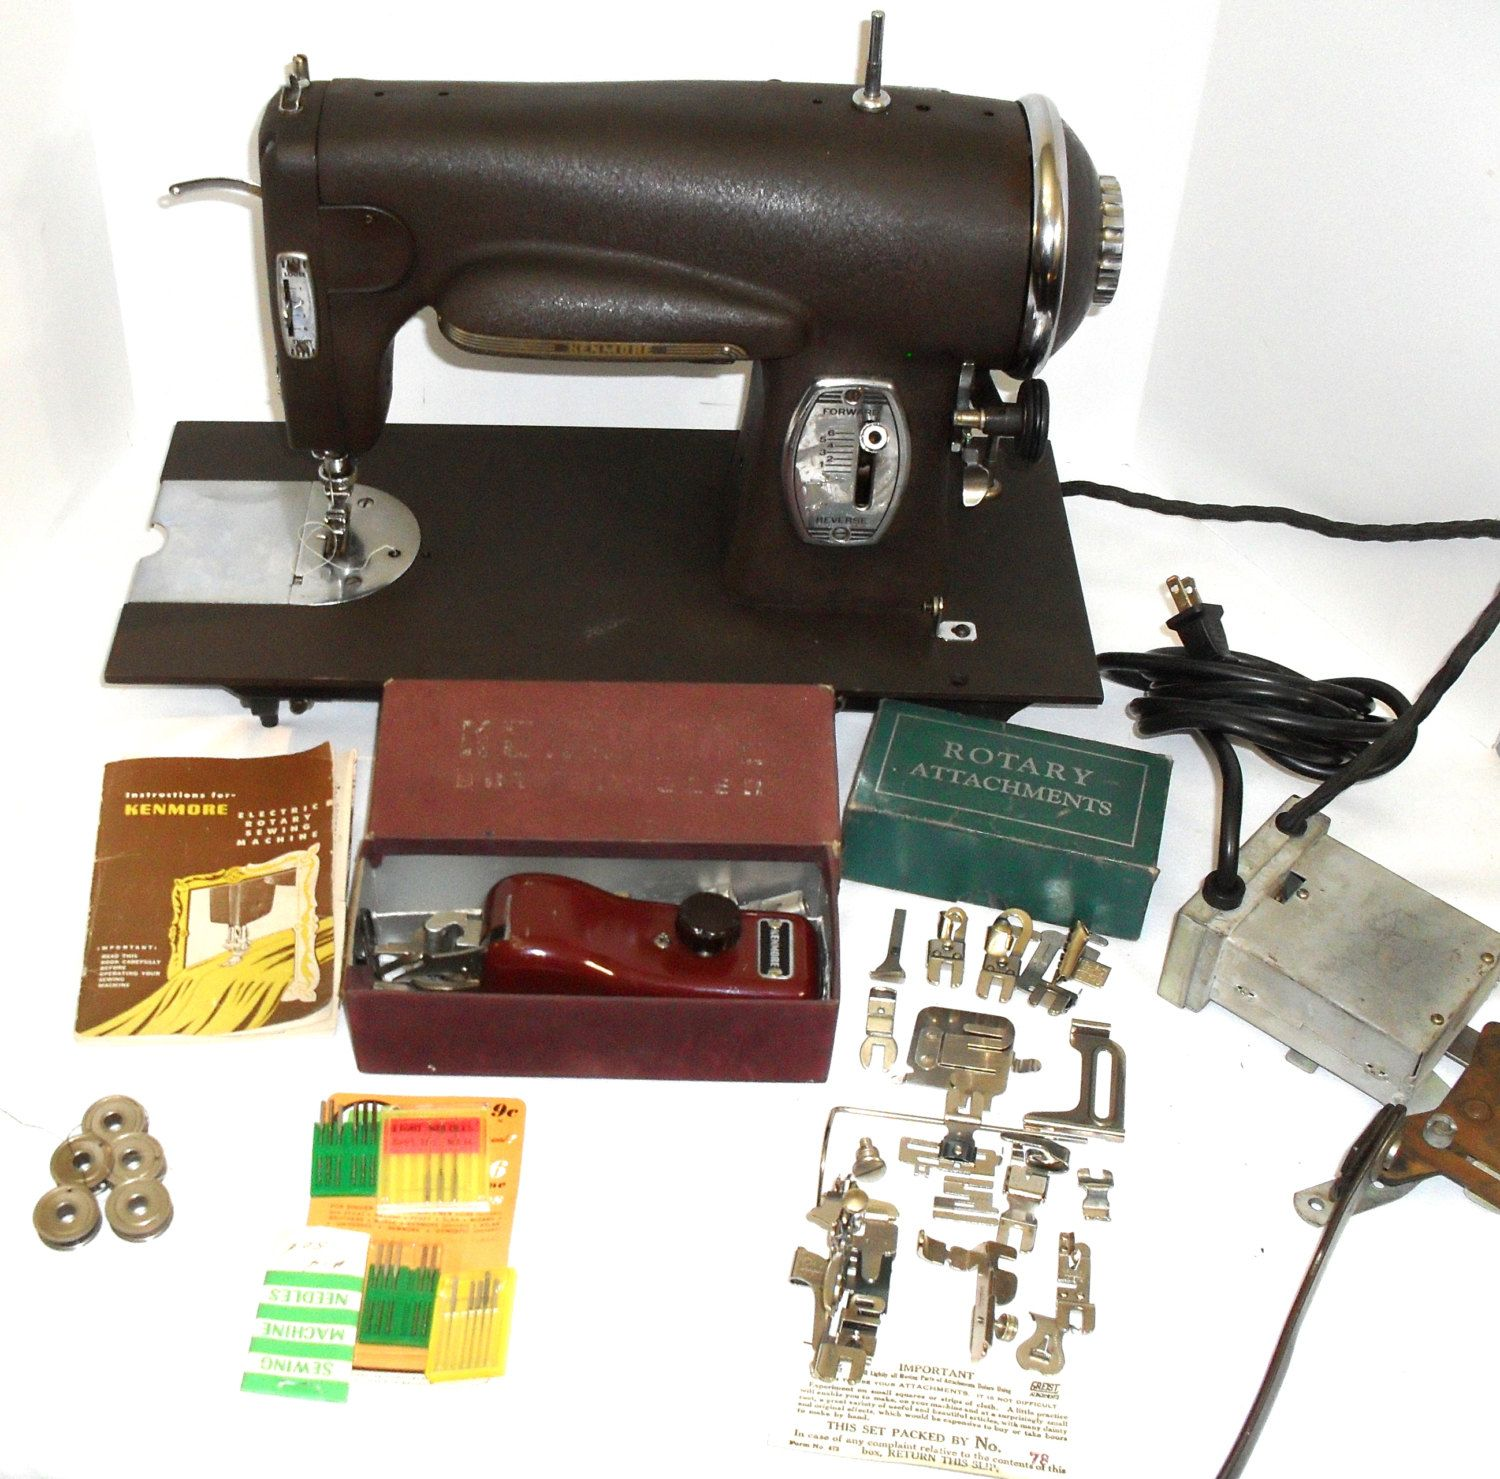 hight resolution of 1940s kenmore 95 rotary heavy duty sewing machine model 117 959 w buttonholer manual needles bobbins and attachments serviced ready to sew by